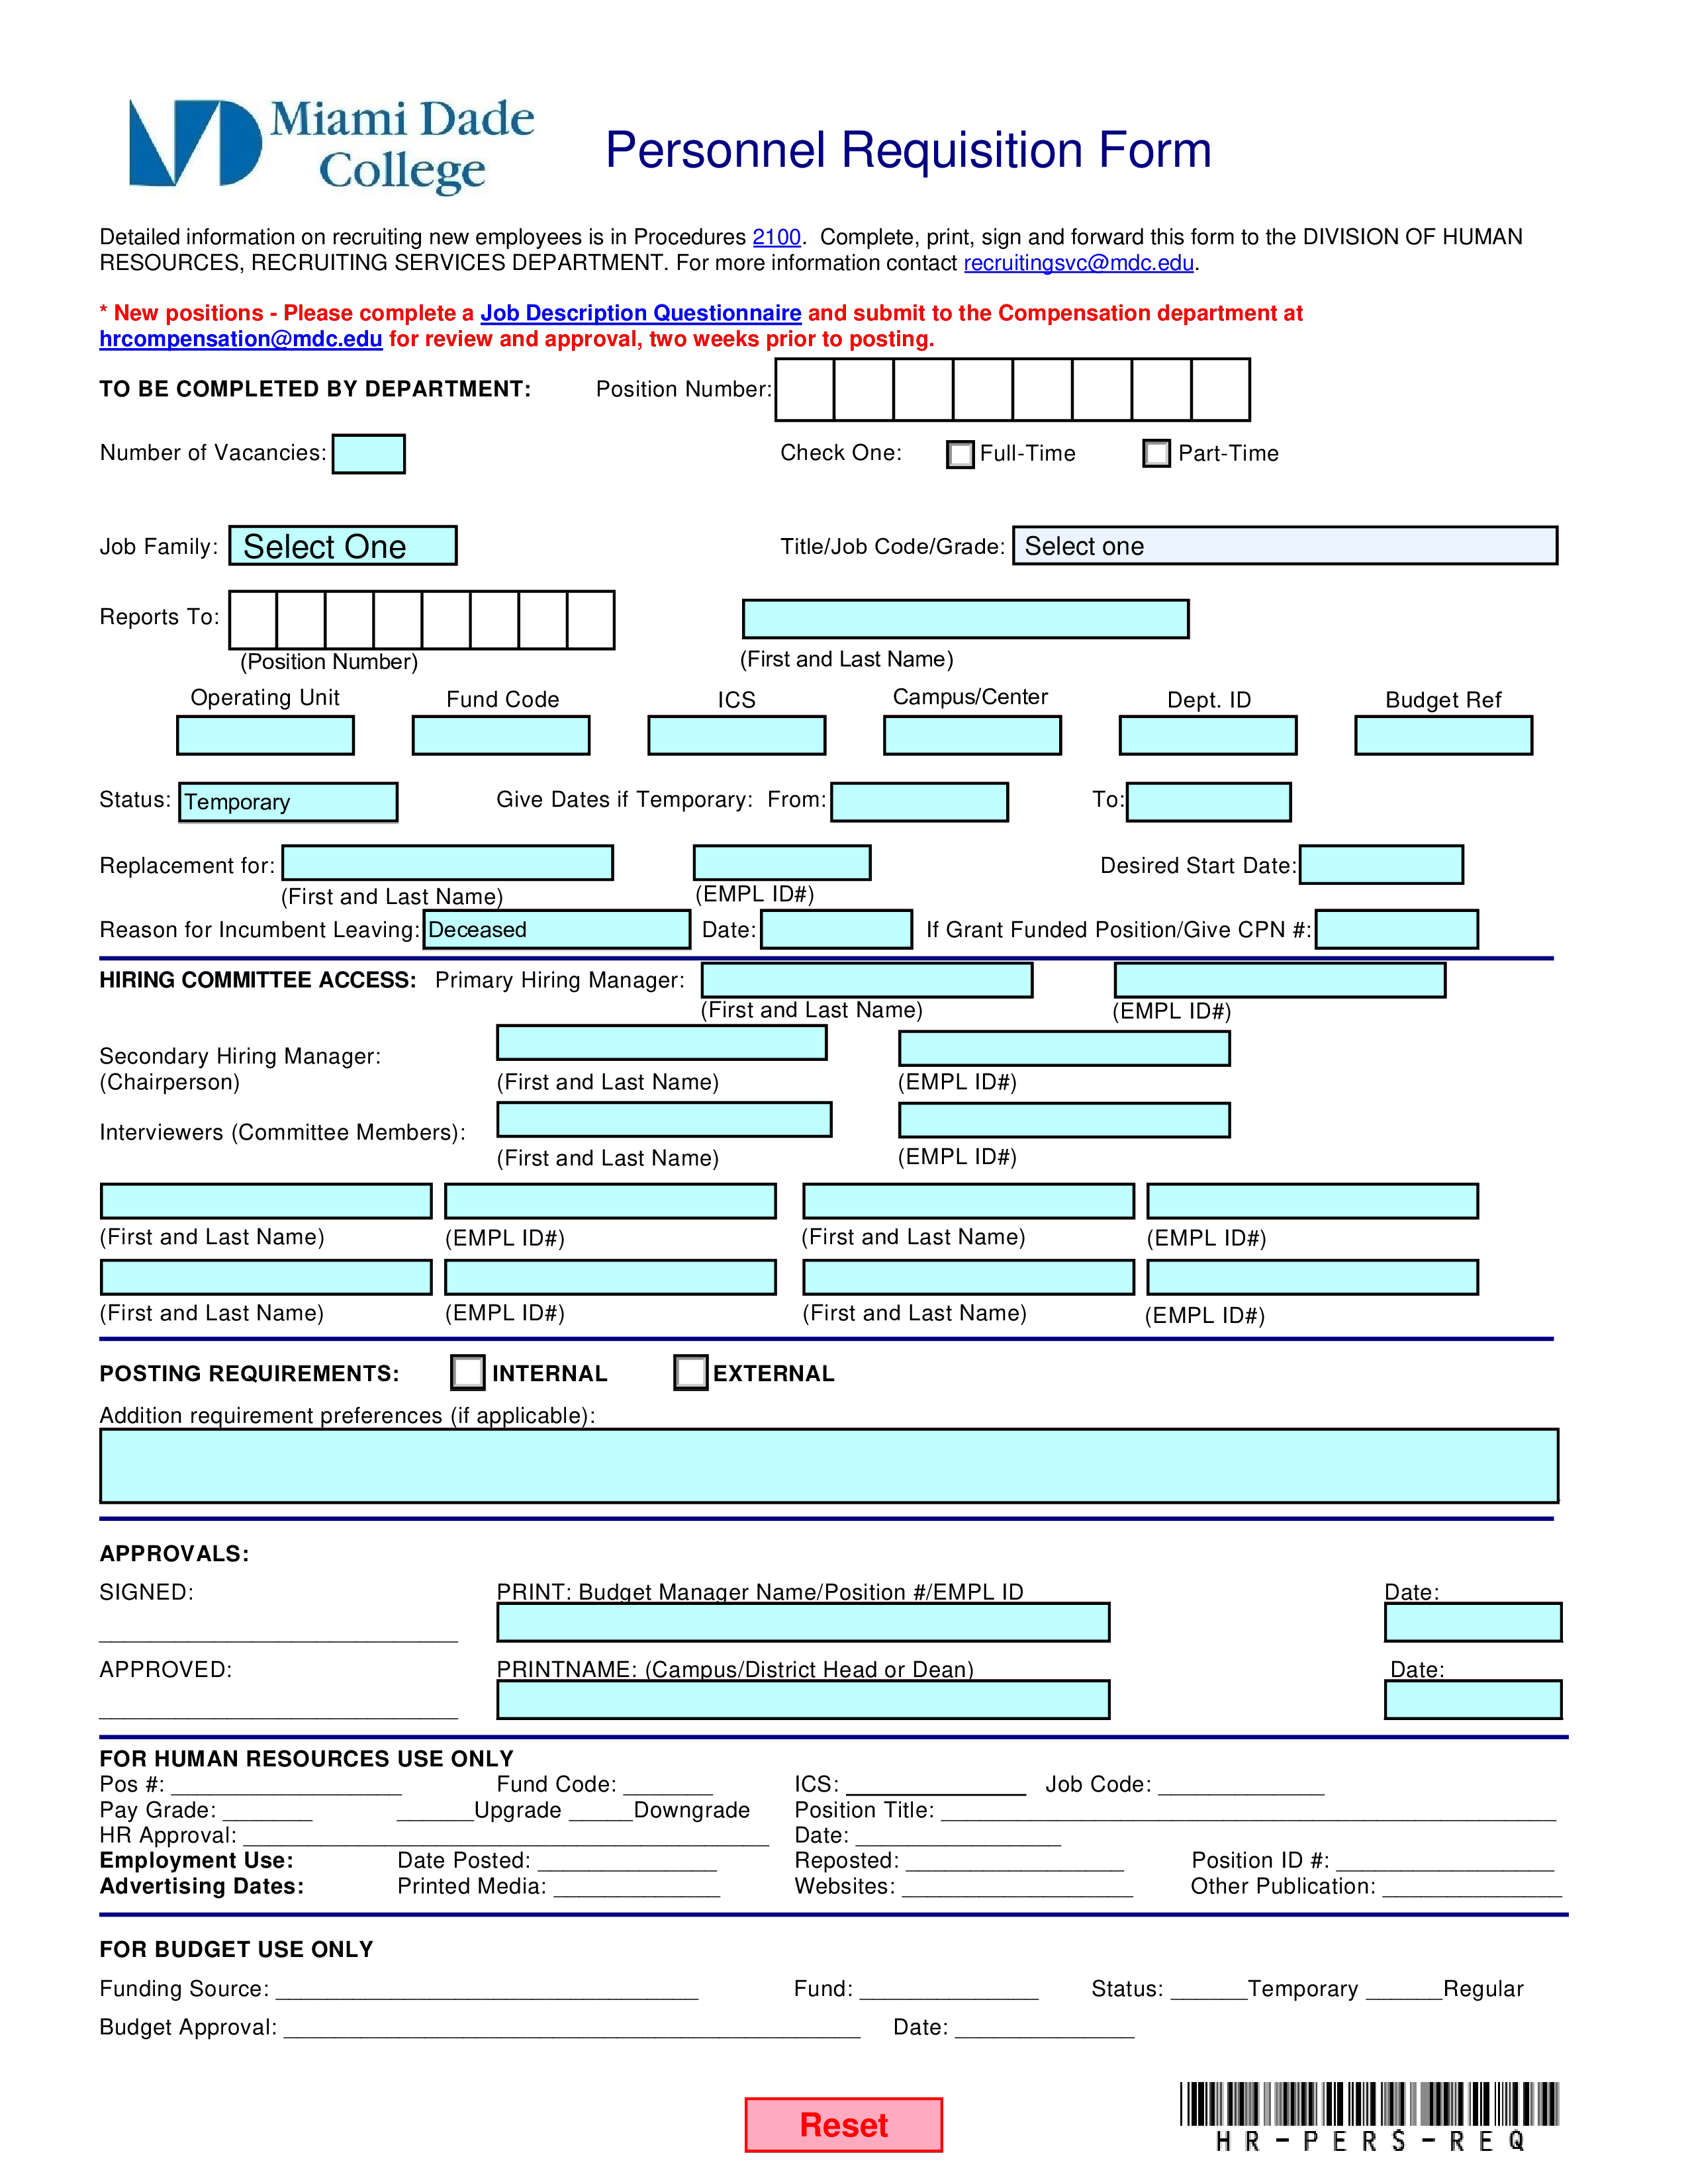 Job Requisition Form Template from www.allbusinesstemplates.com